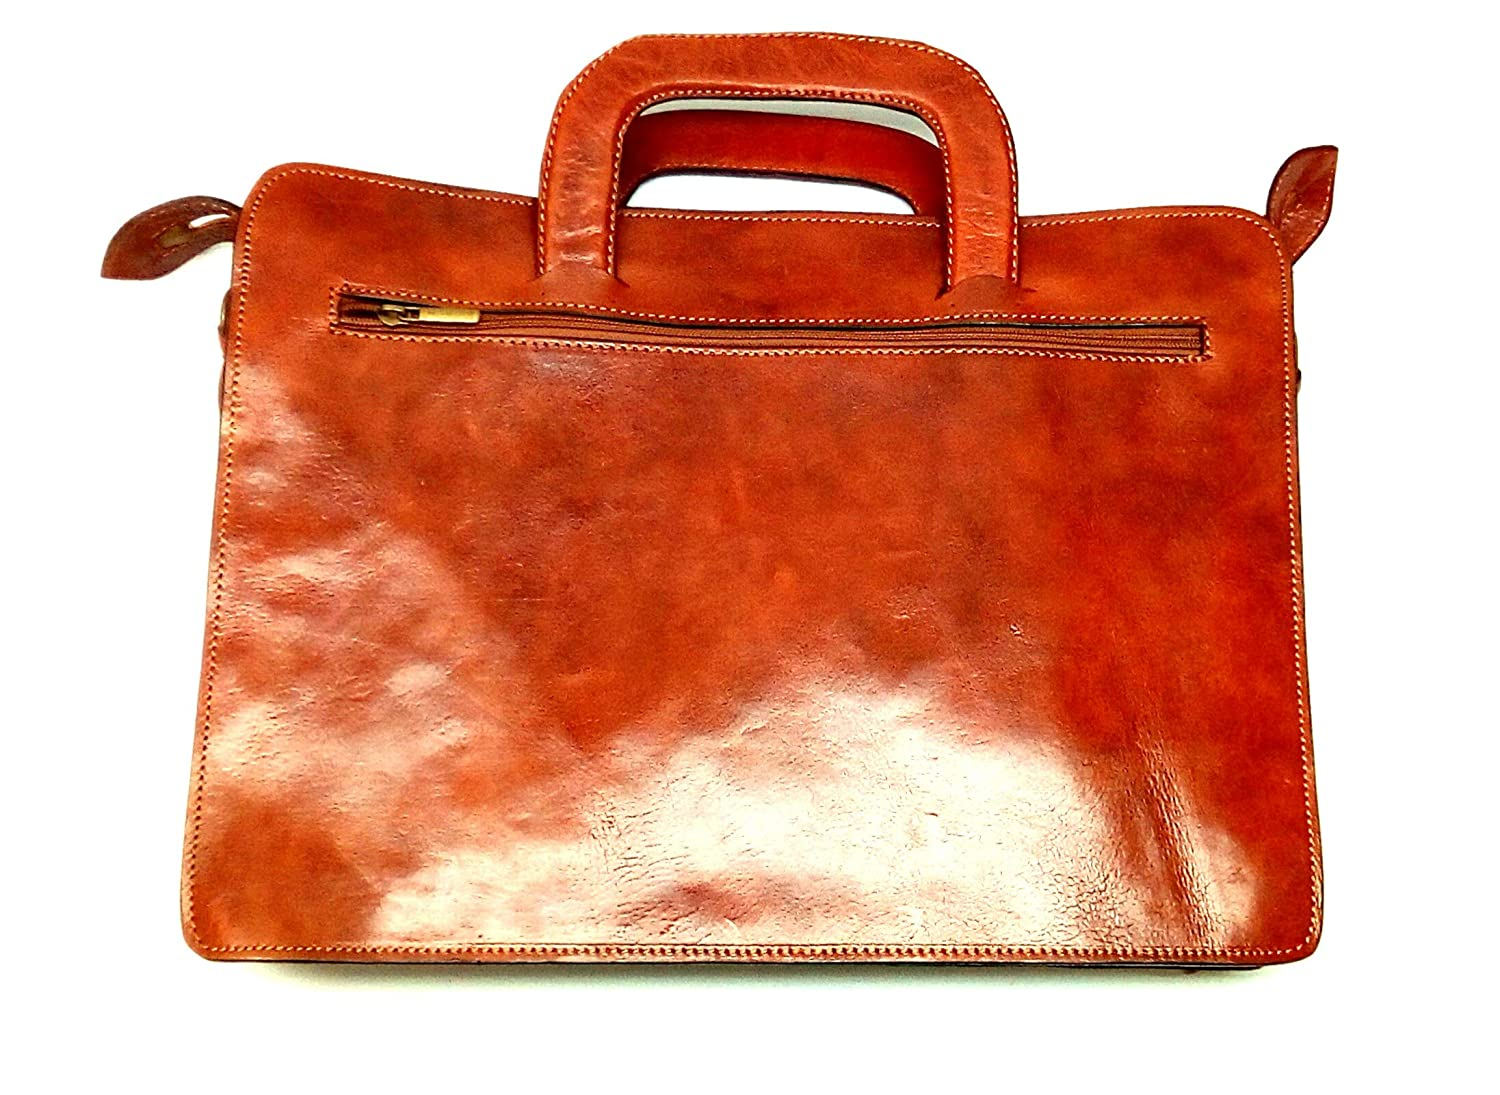 Genuine Leather Briefcase Handmade Moroccan Craftsmanship Lifetime Leather Tan 1 pc